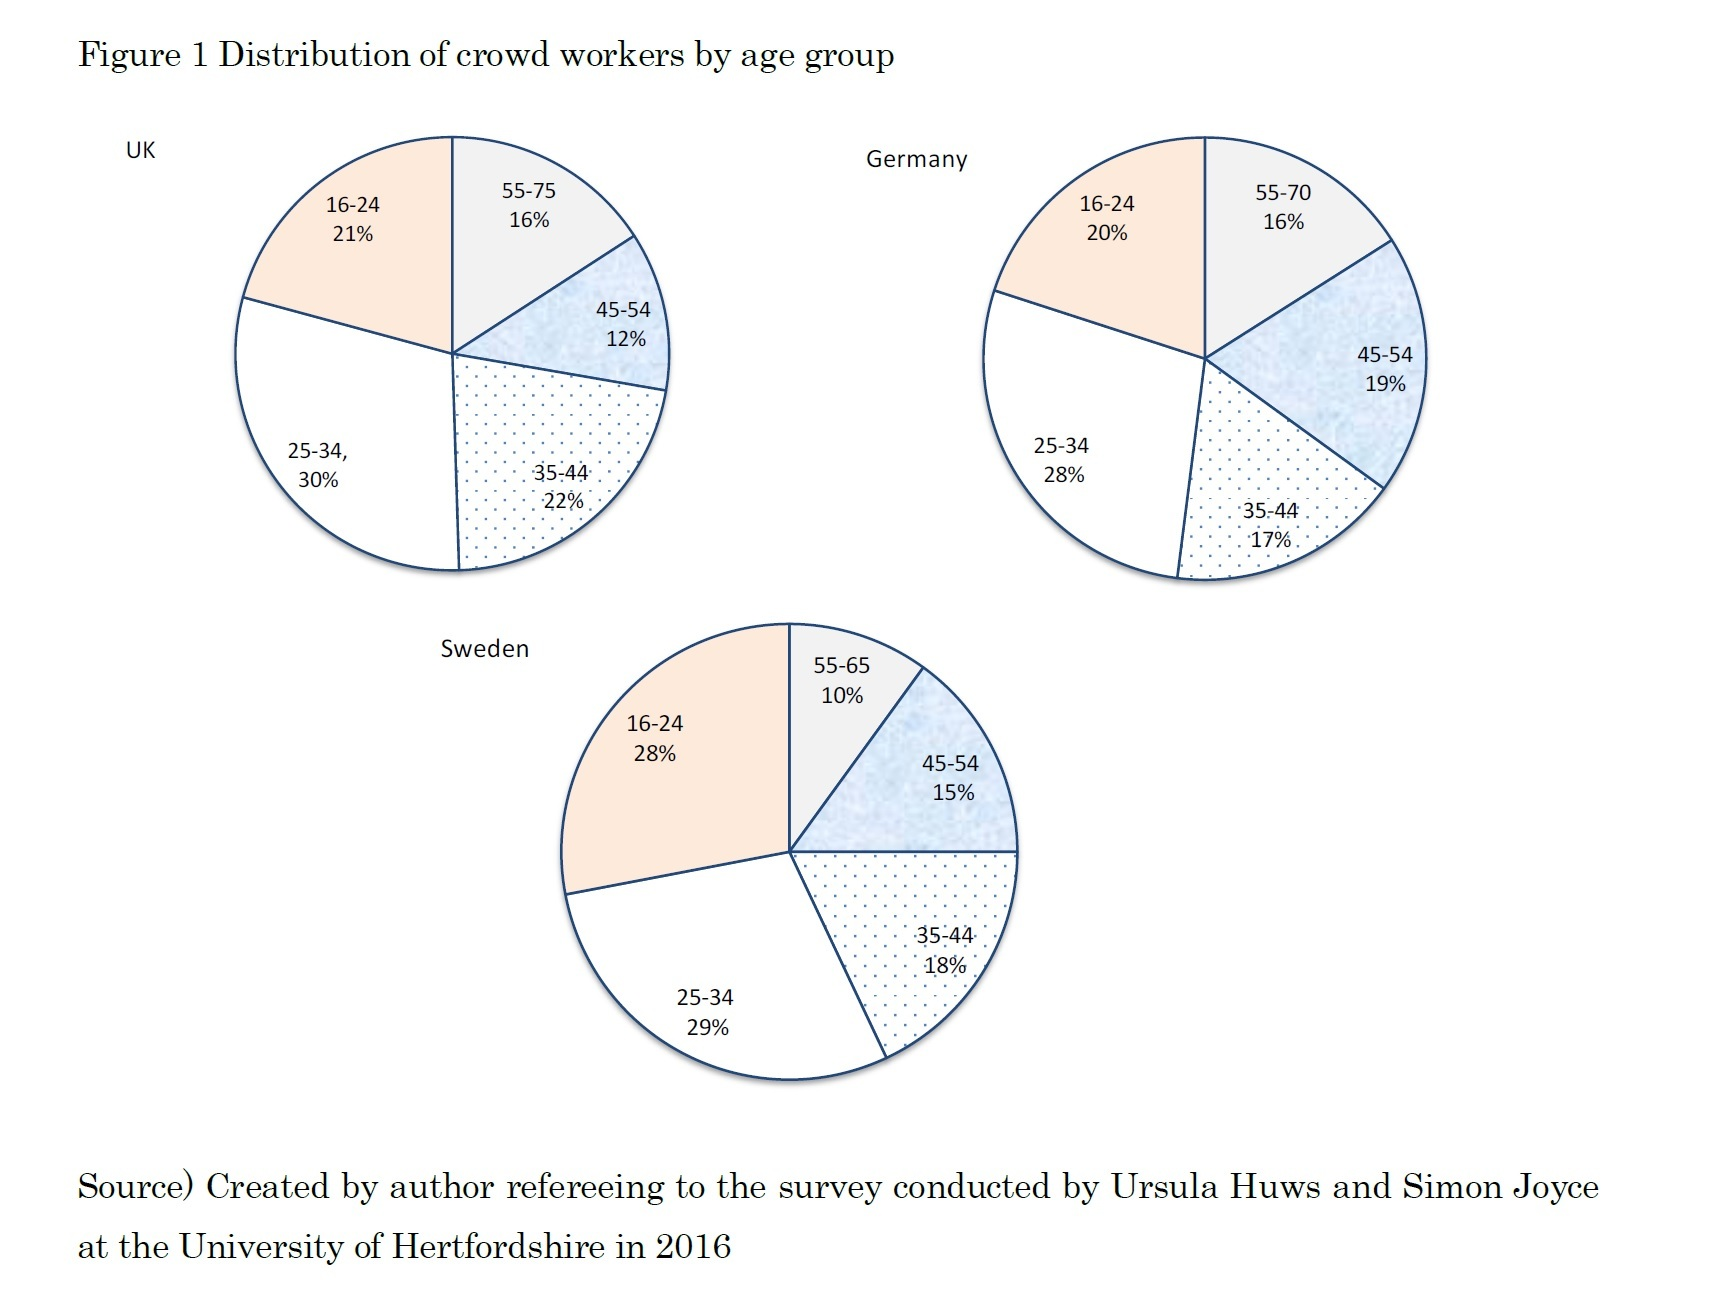 Figure 1 Distribution of crowd workers by age group